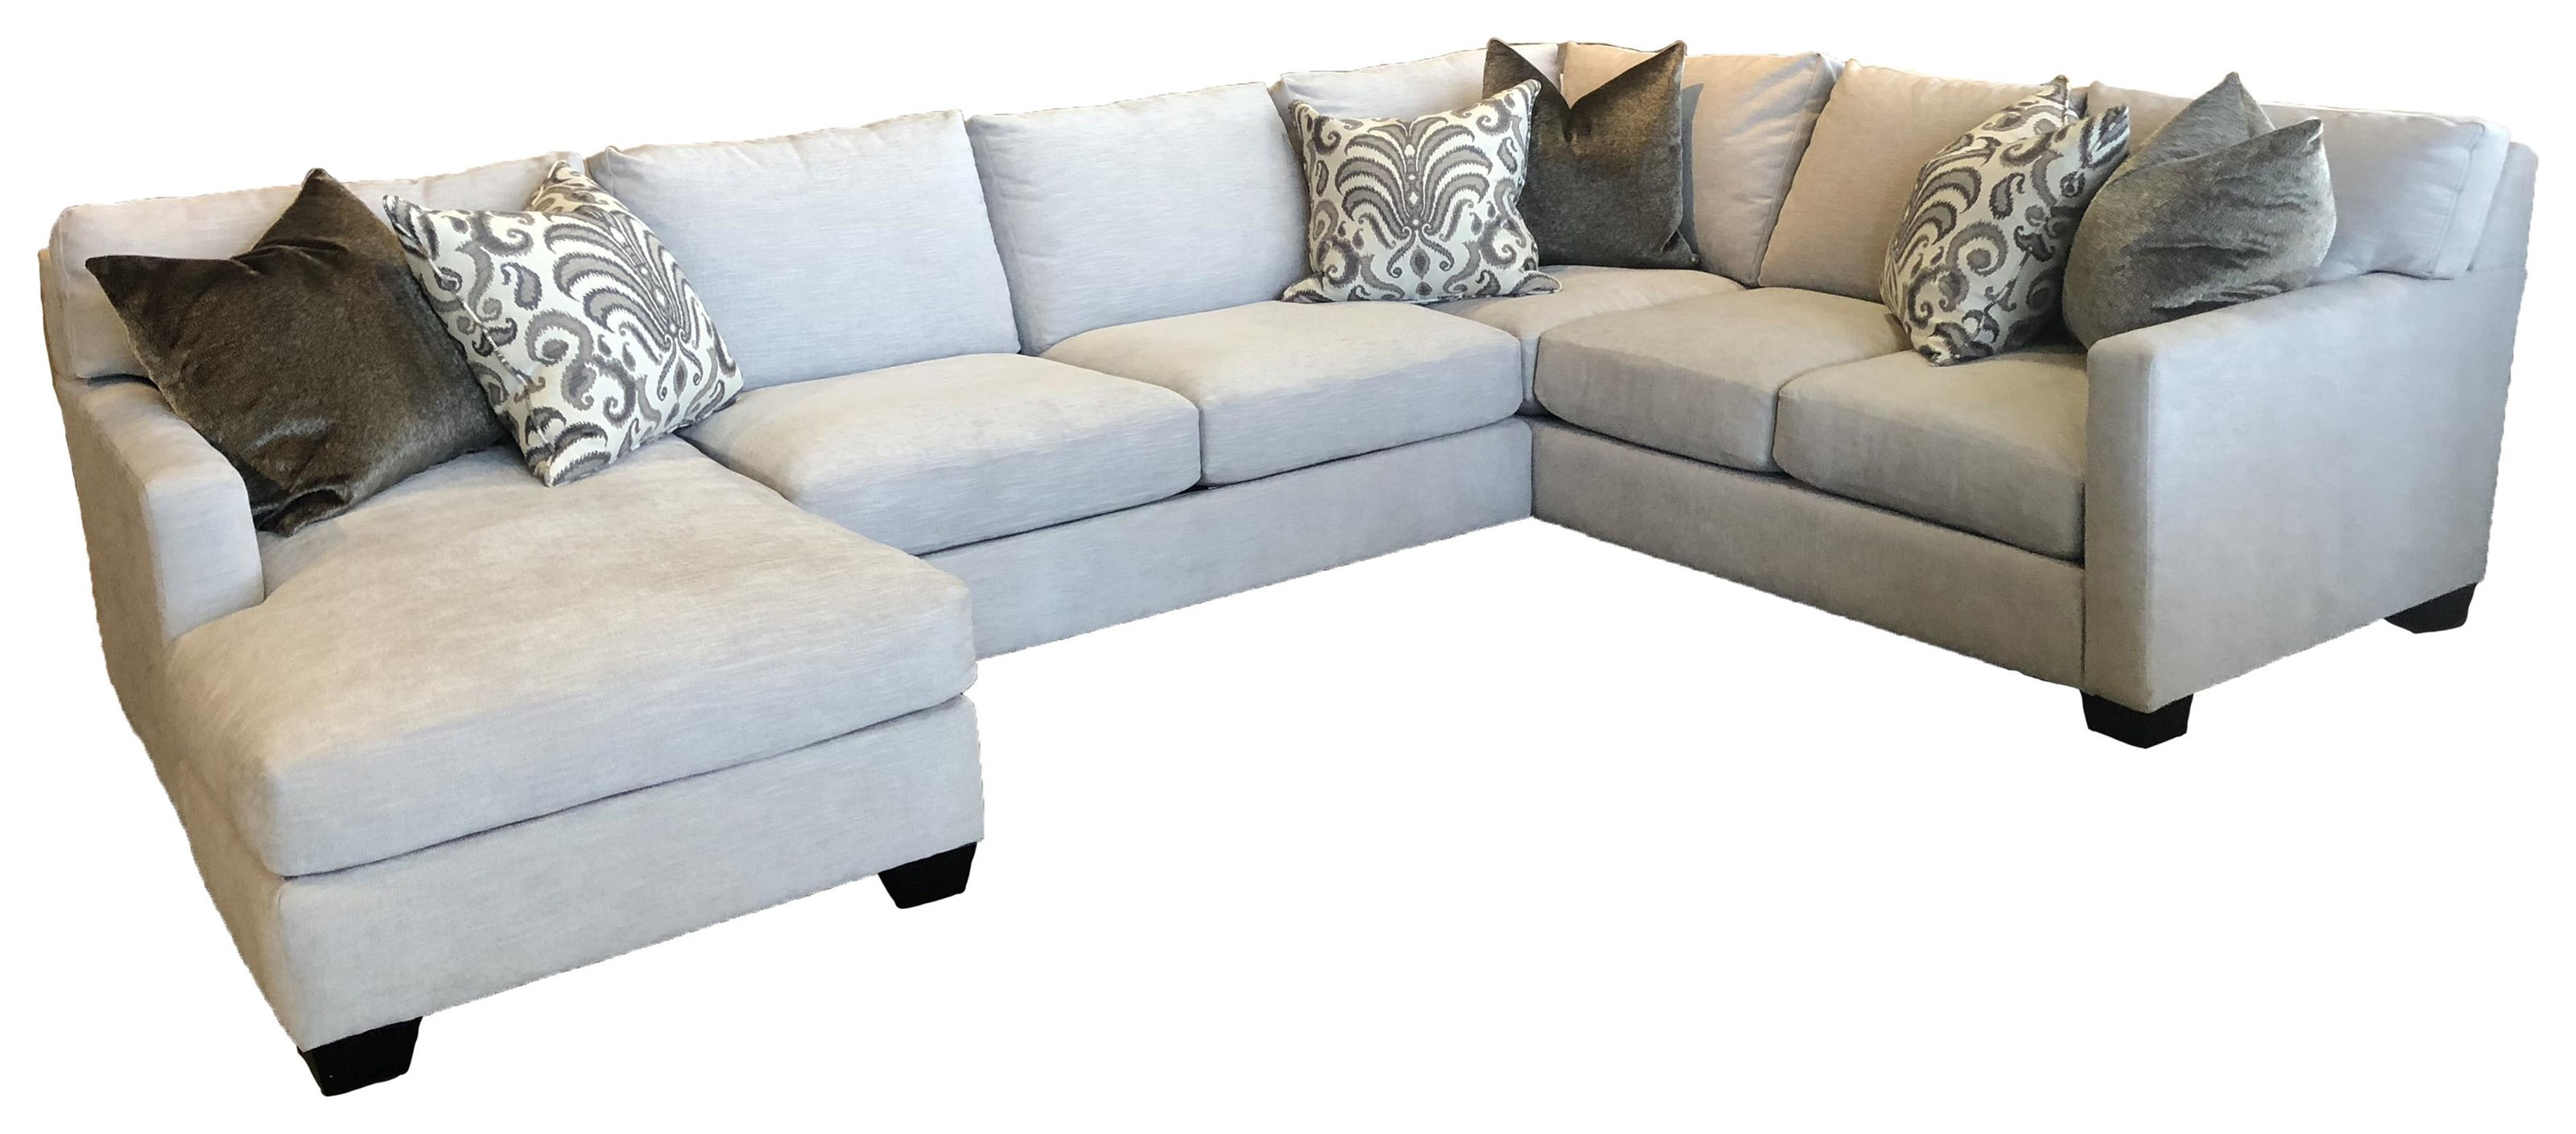 Reeds Trading Company 1300 1300 3 Piece Sectional - Item Number: 1300 3 Piece Sectional LAF Tux 78 S